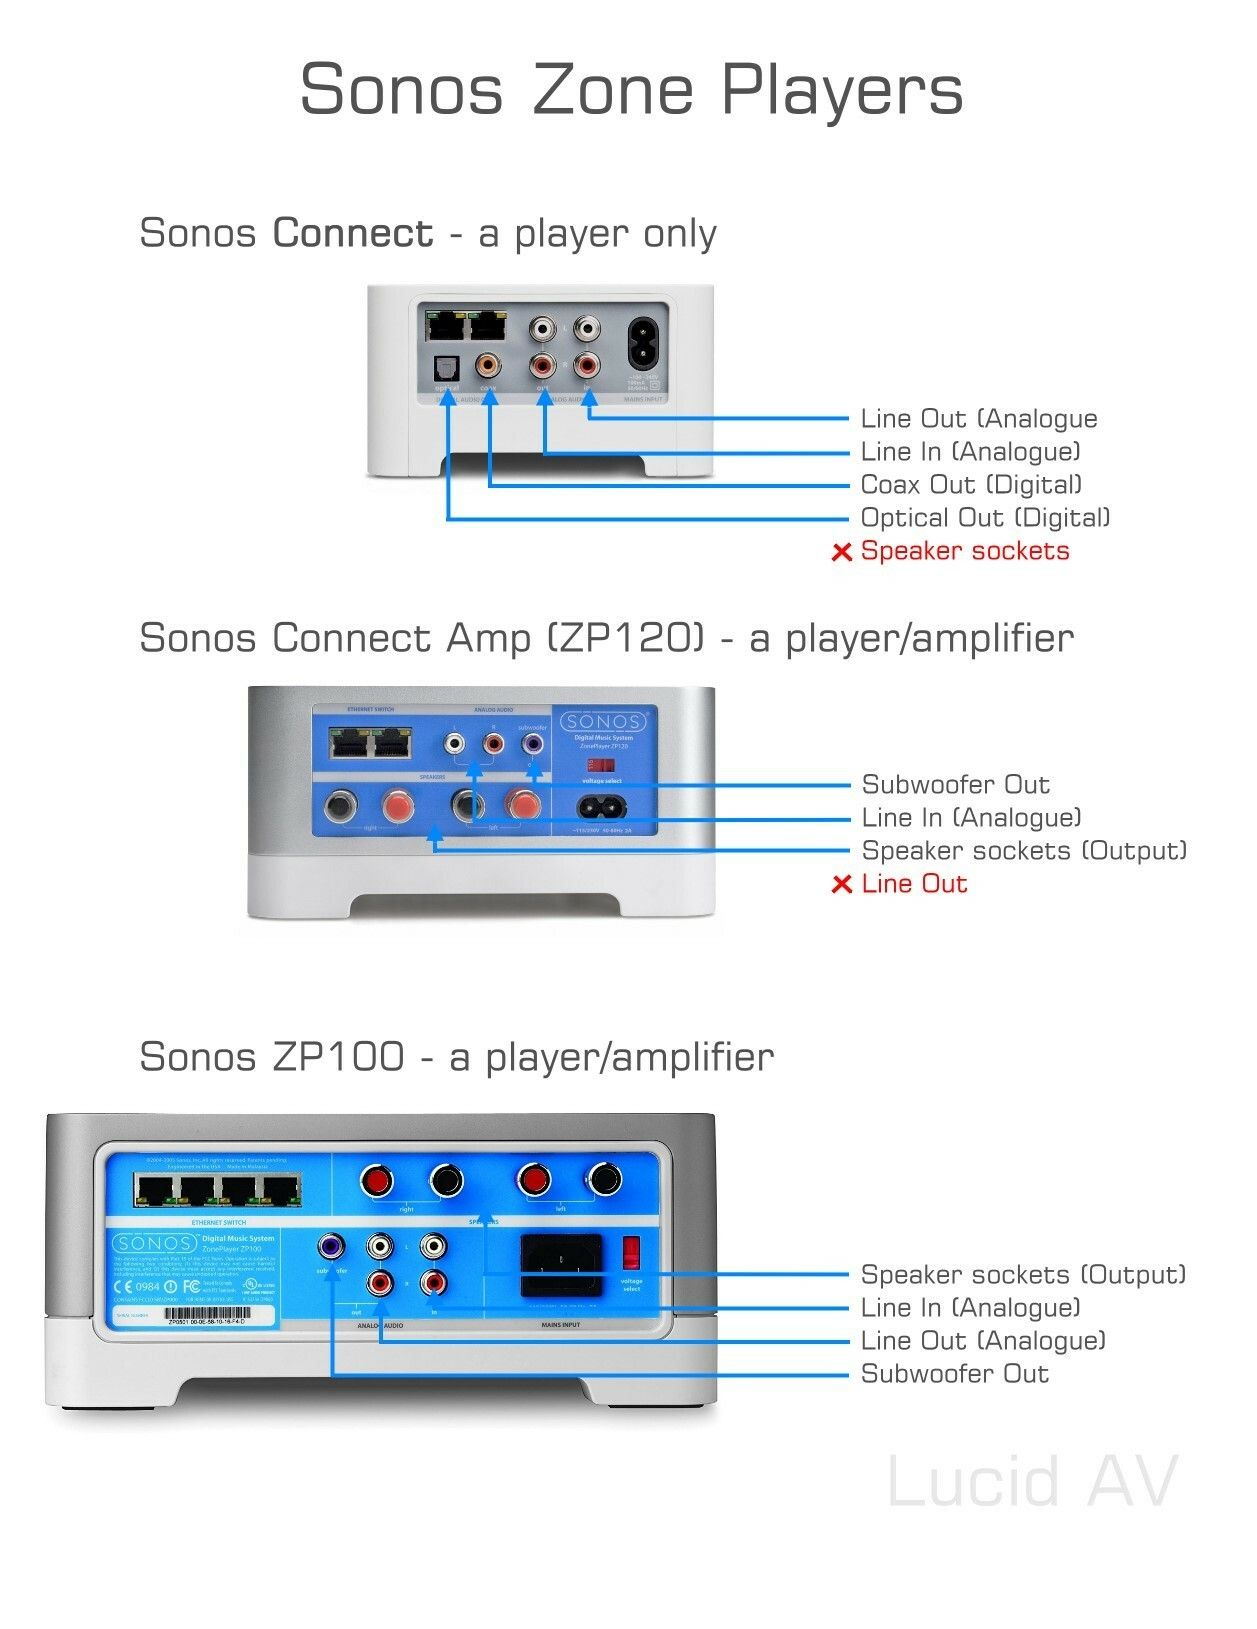 hight resolution of  is connect via speaker sockets and via line out then you must have a sonos zp100 because that s the only player with speaker sockets and a line out